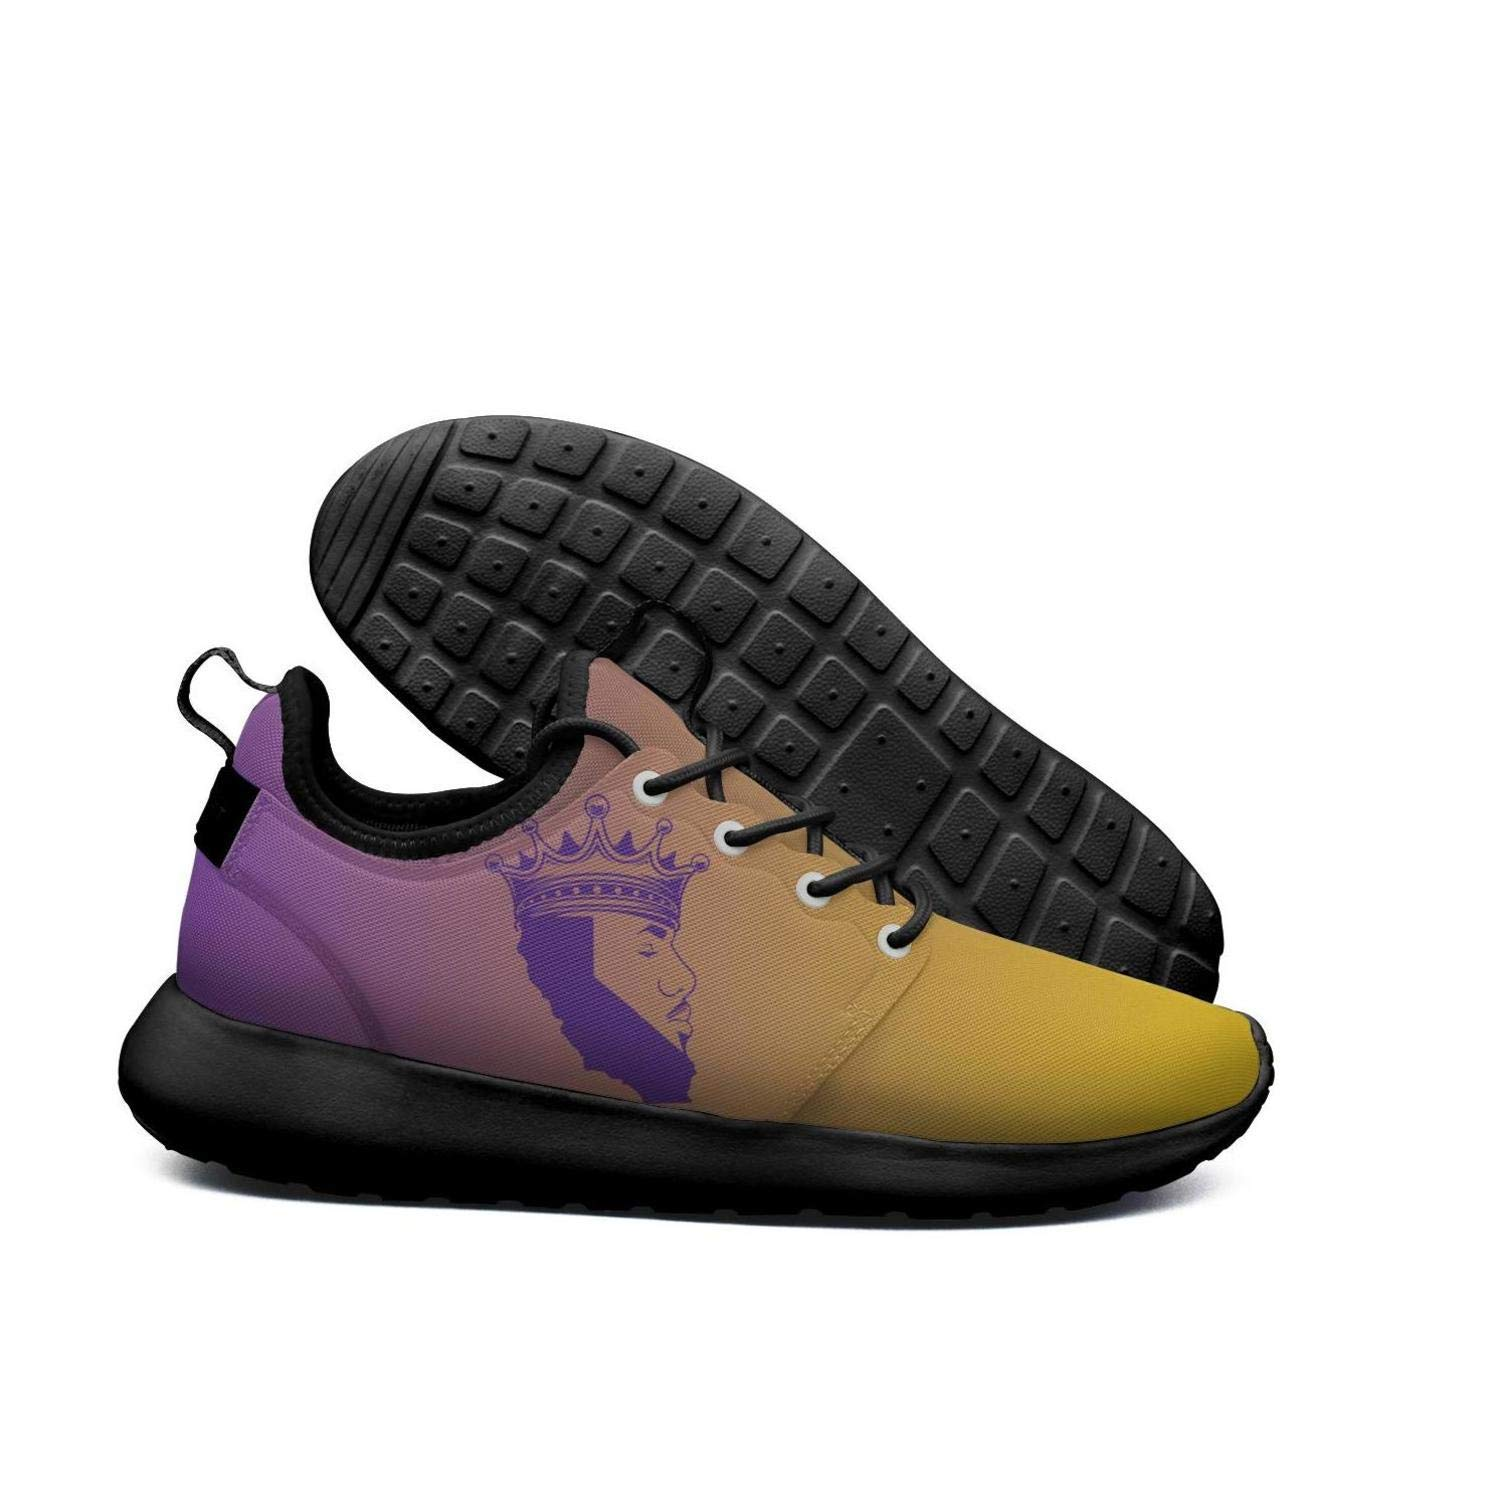 b5dfe0fb071 Get Quotations · Womens Roshe Two Lightweight  Purple Basketball 23 Crown Kings LA Coll Road Running mesh Shoes